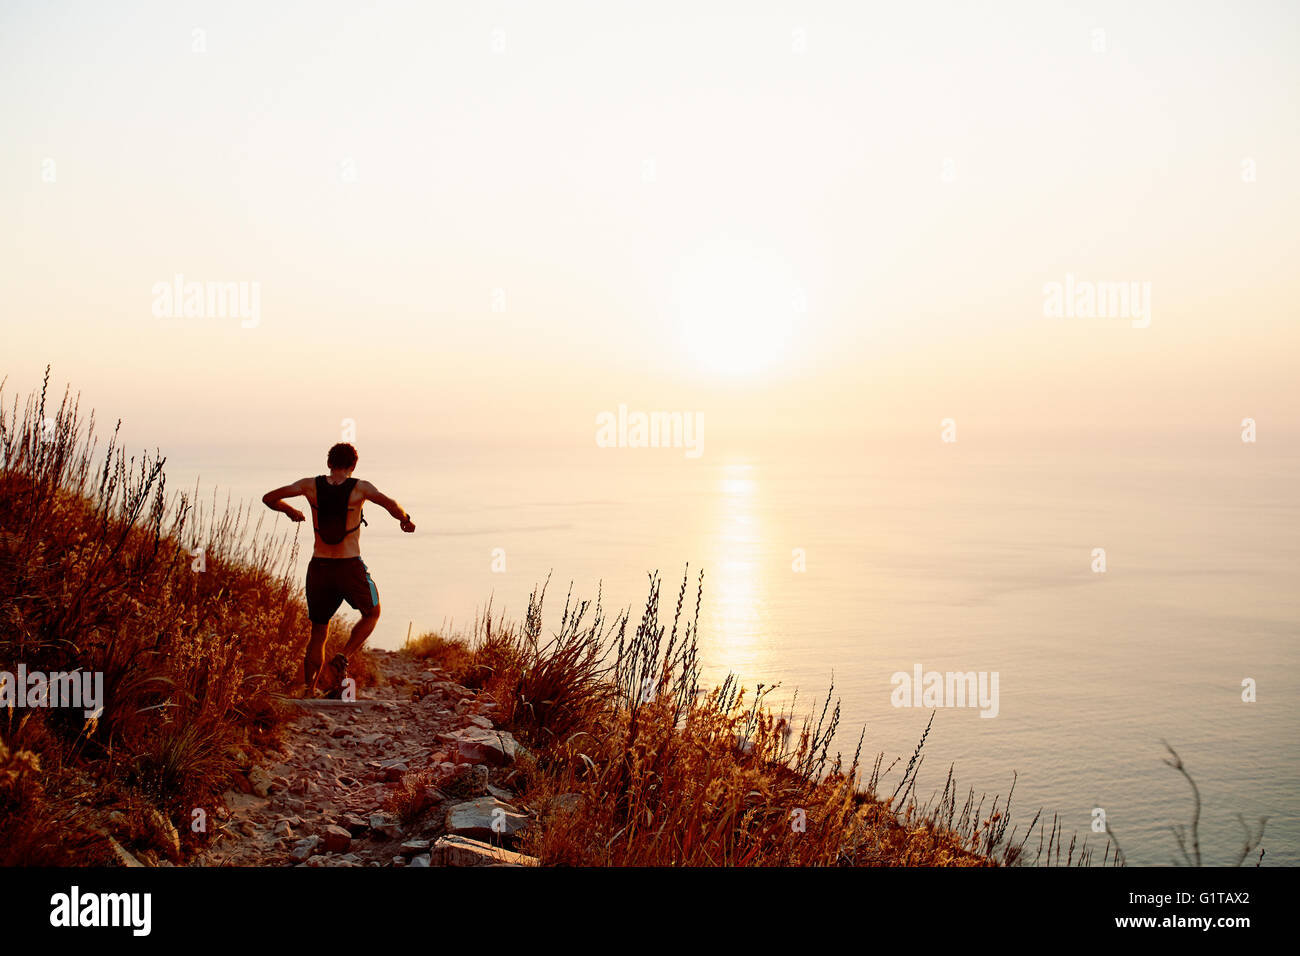 Male runner with backpack descending craggy trail overlooking sunset ocean - Stock Image